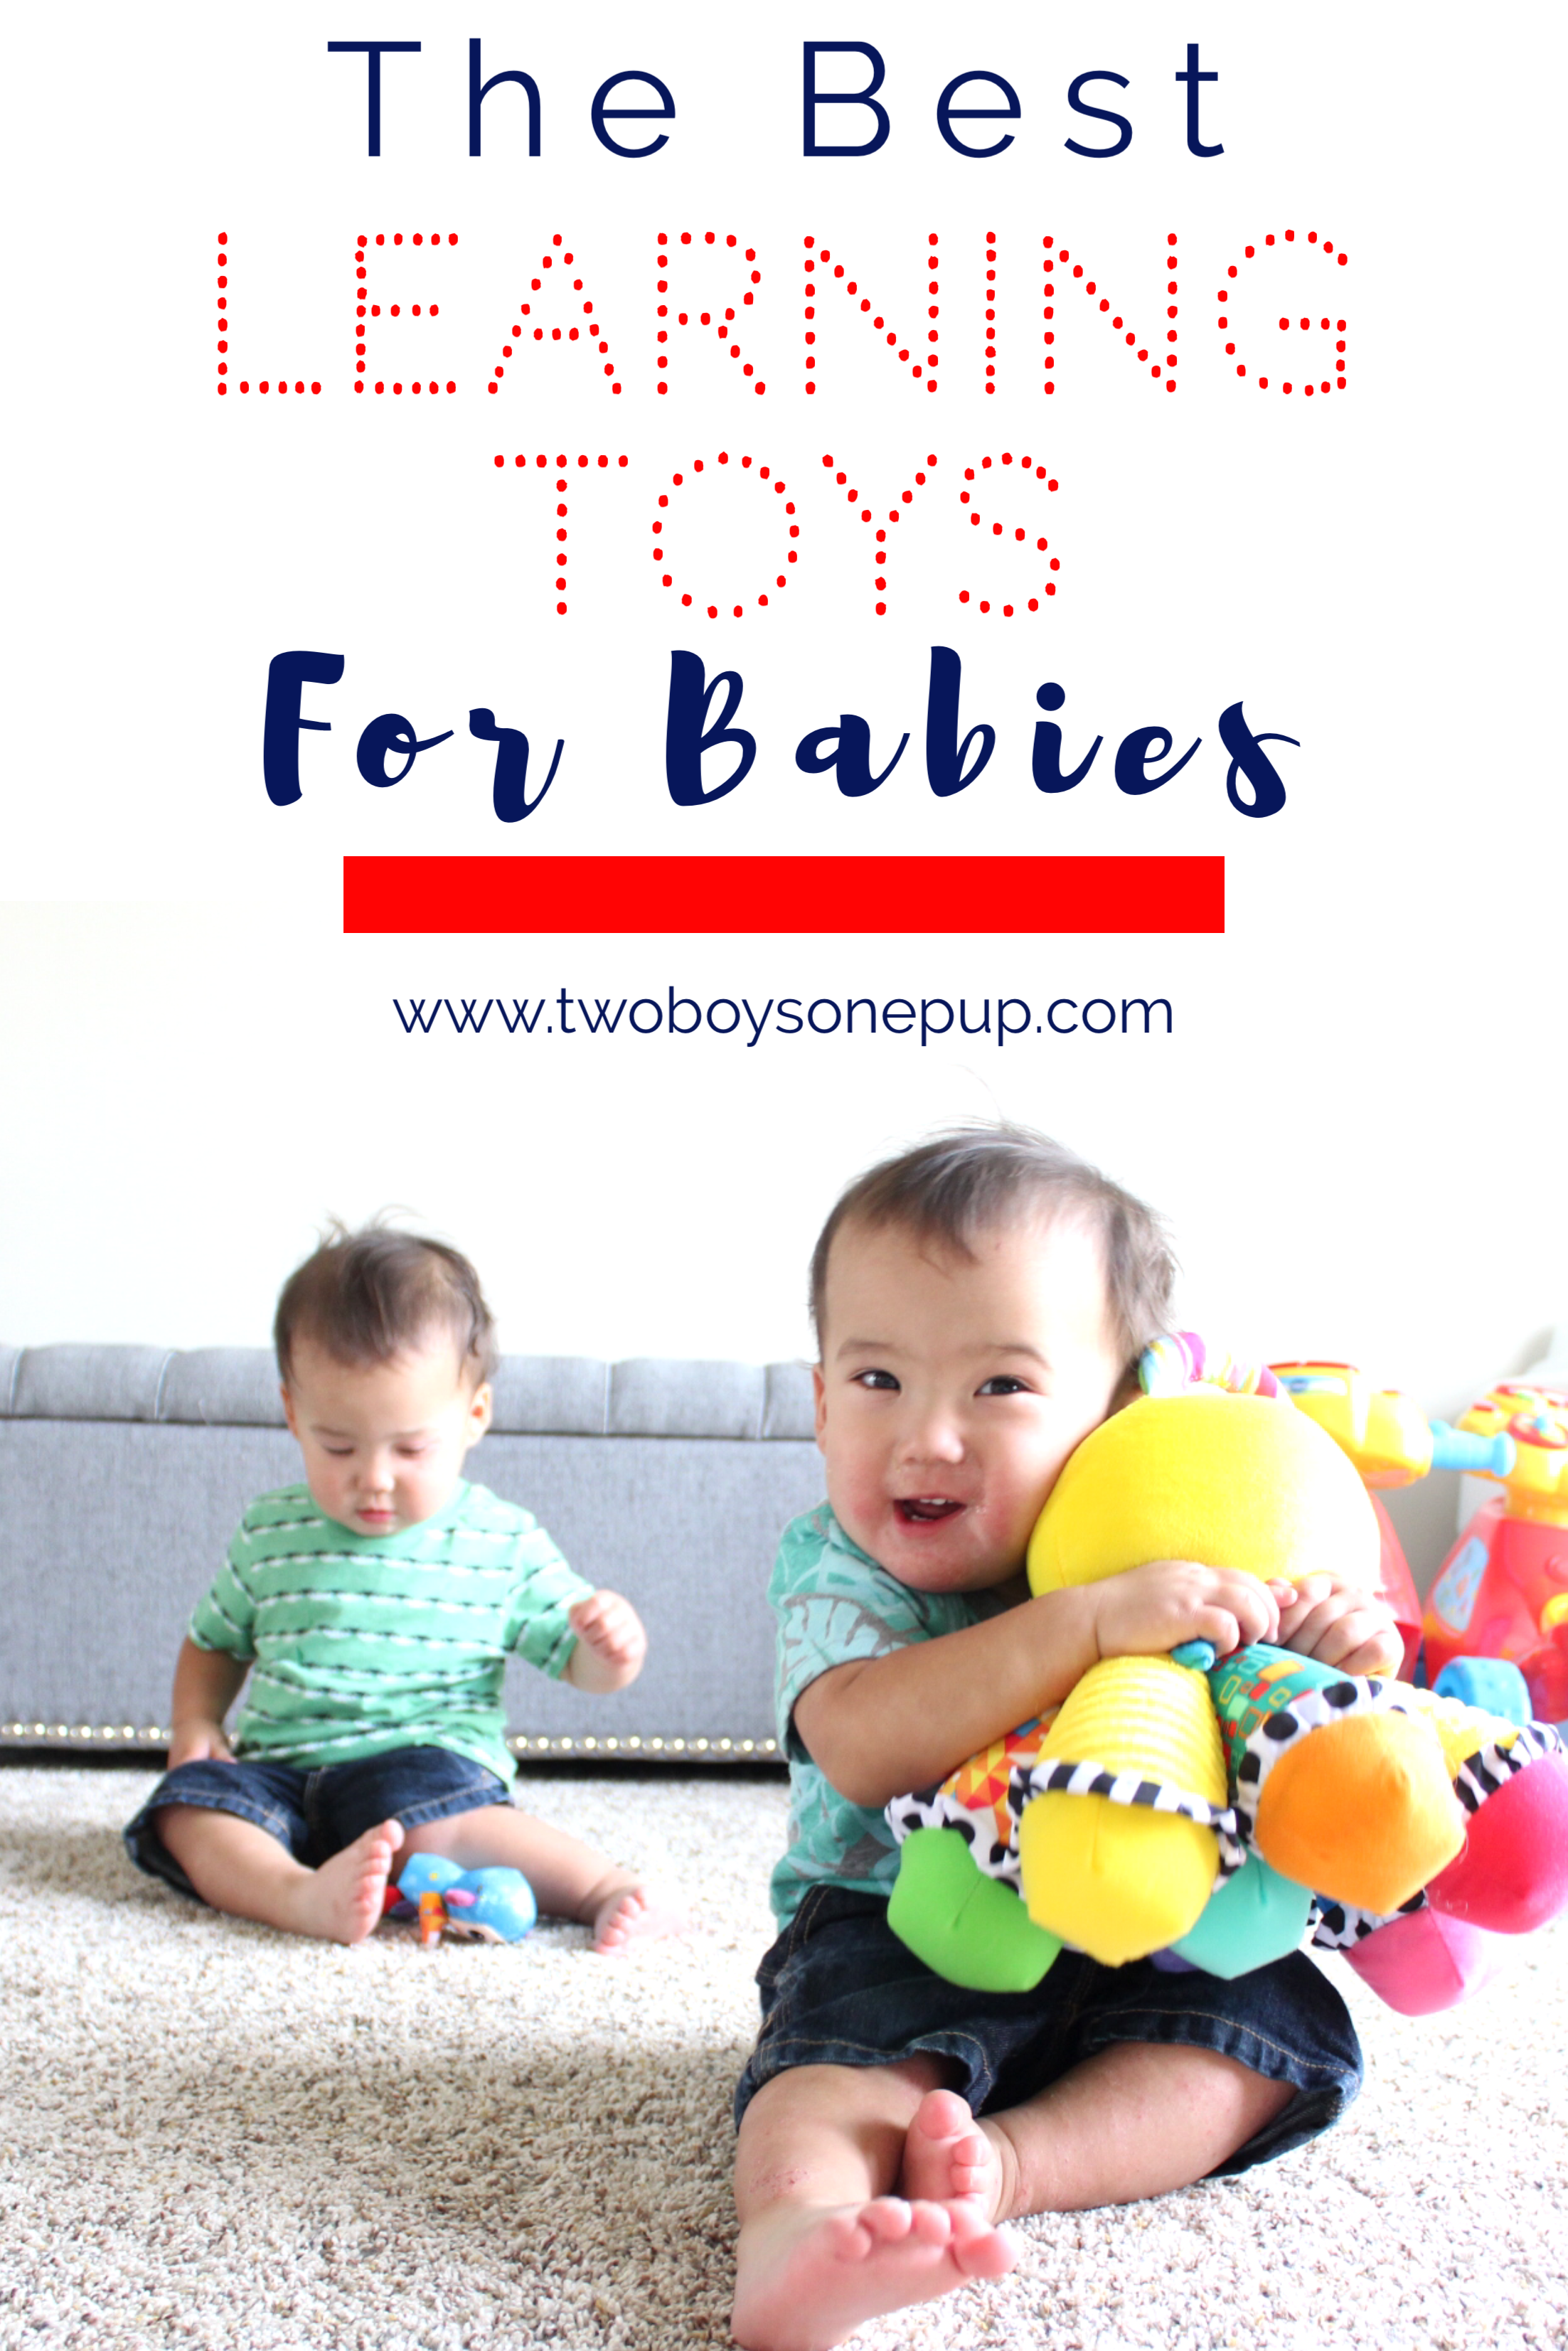 The Best Learning Toys for Babies • Two Boys e Pup